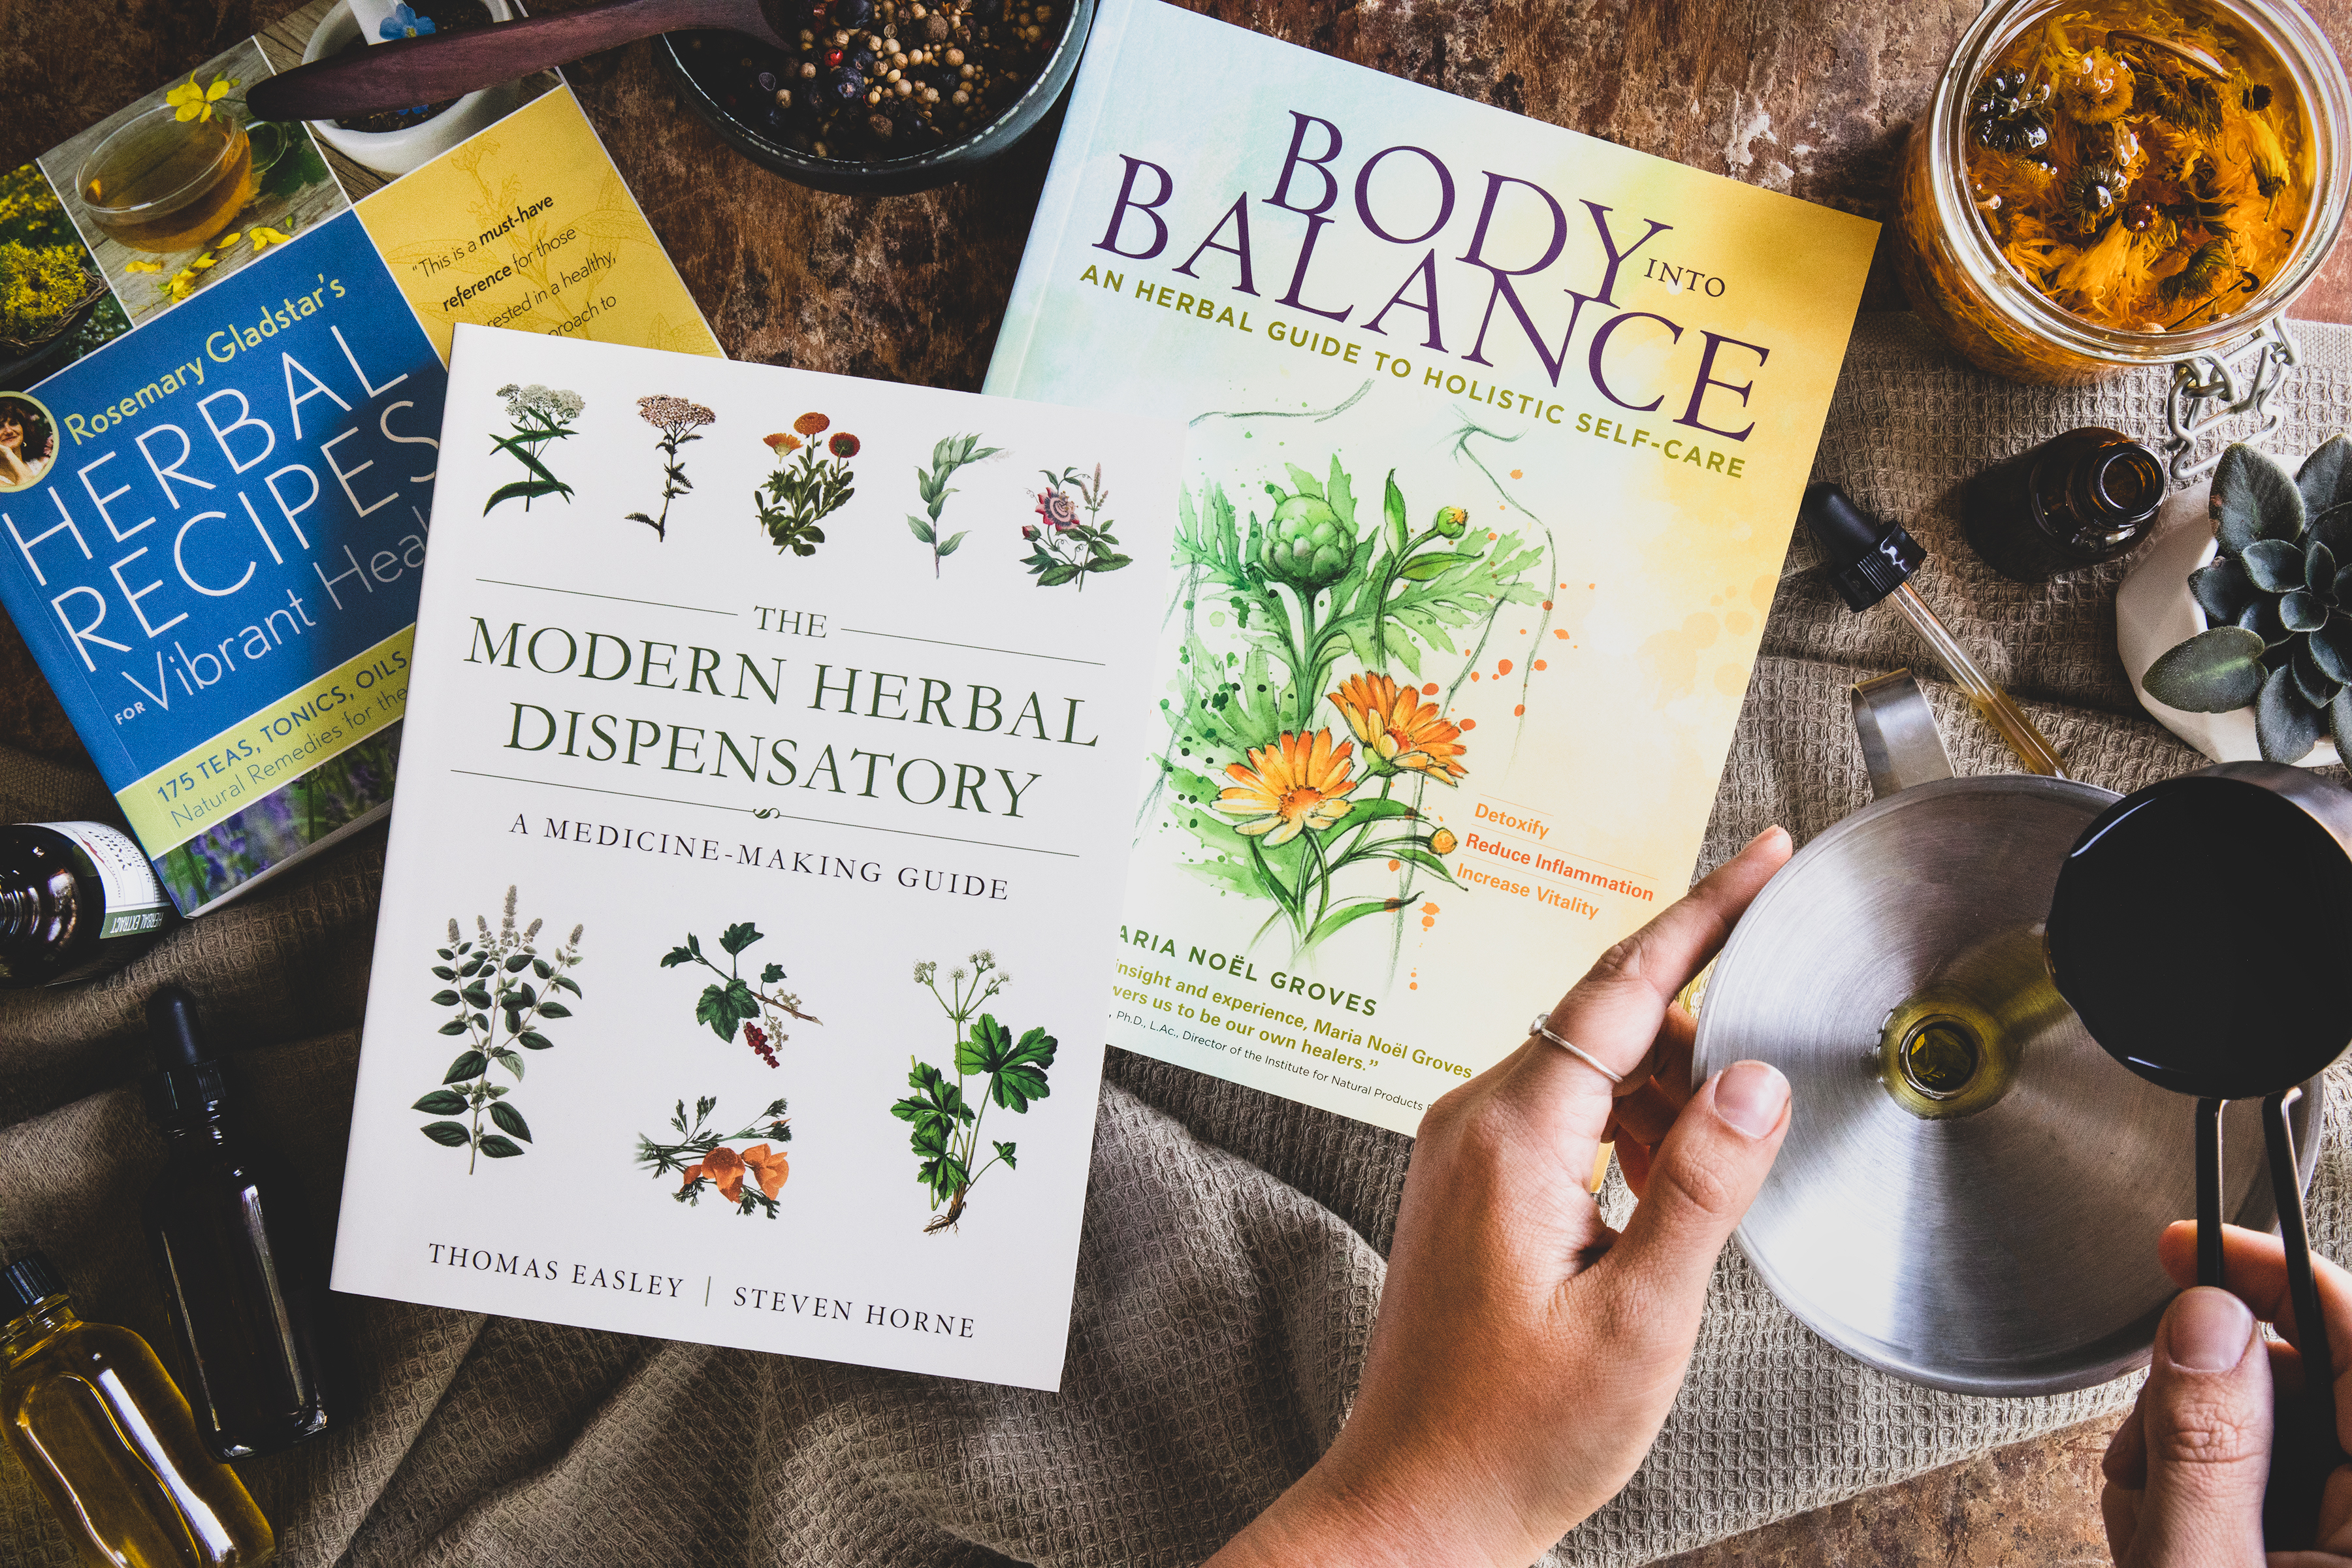 Three favorite books on herbalism with hands working on a recipe.